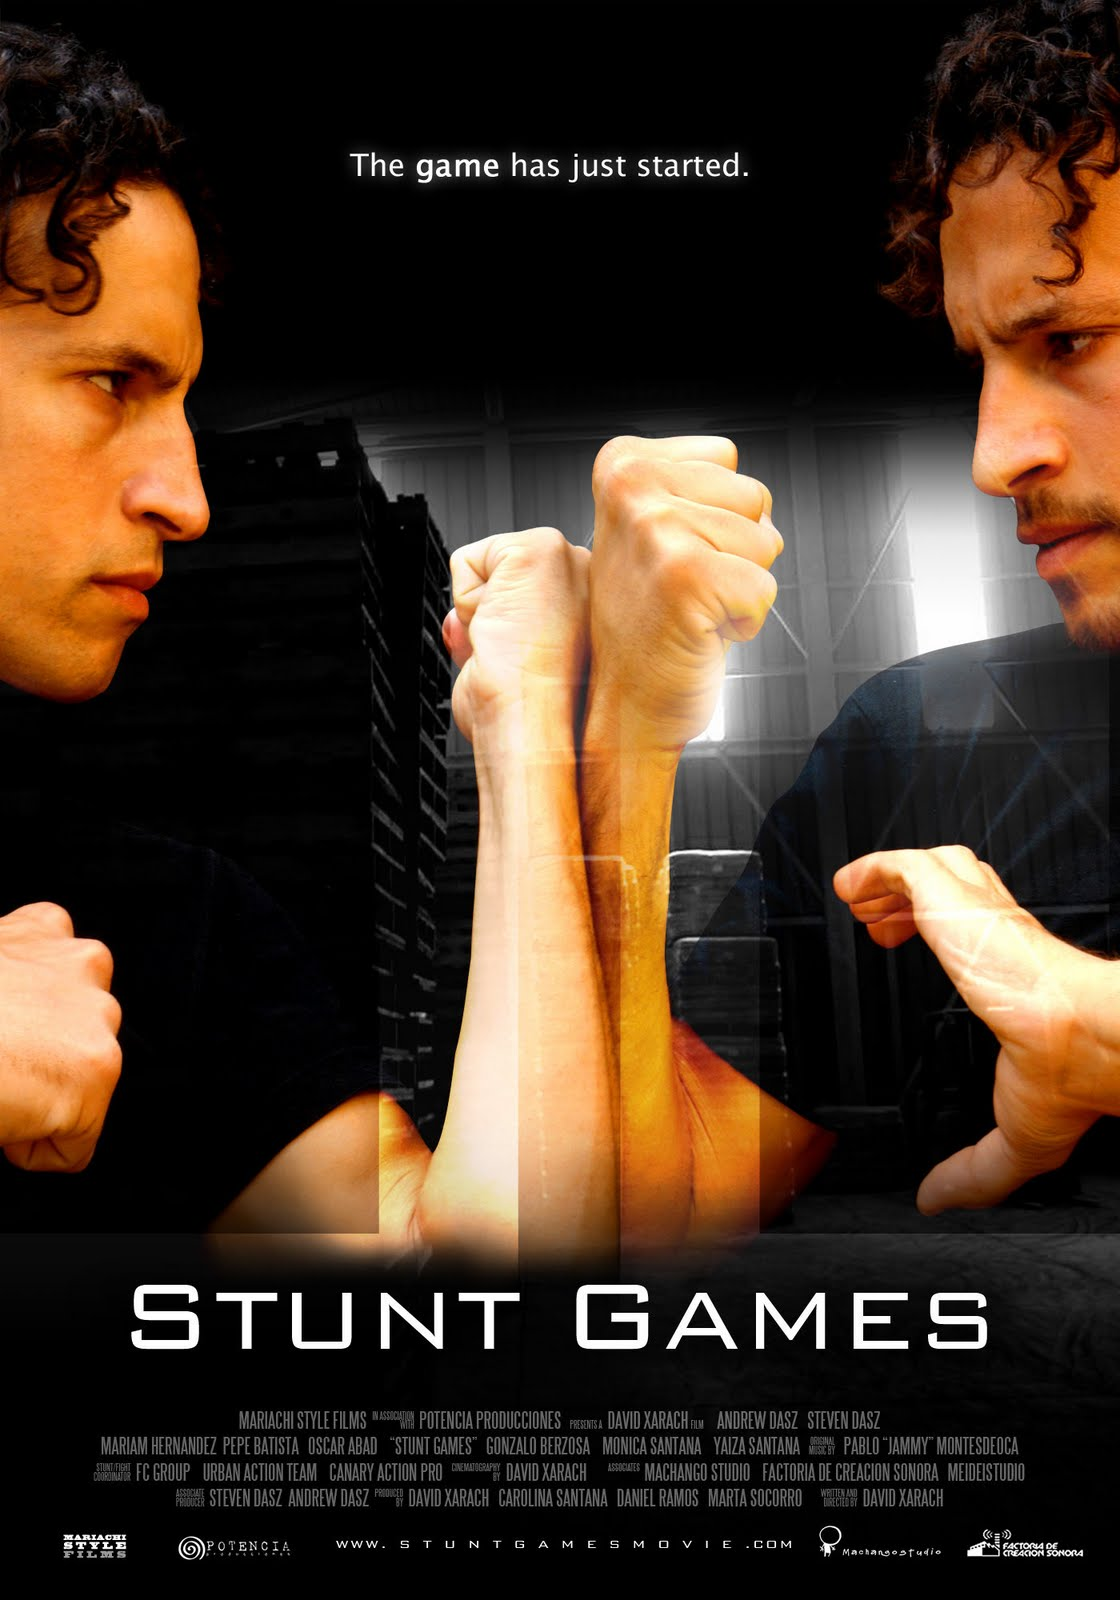 Stunt Games movie